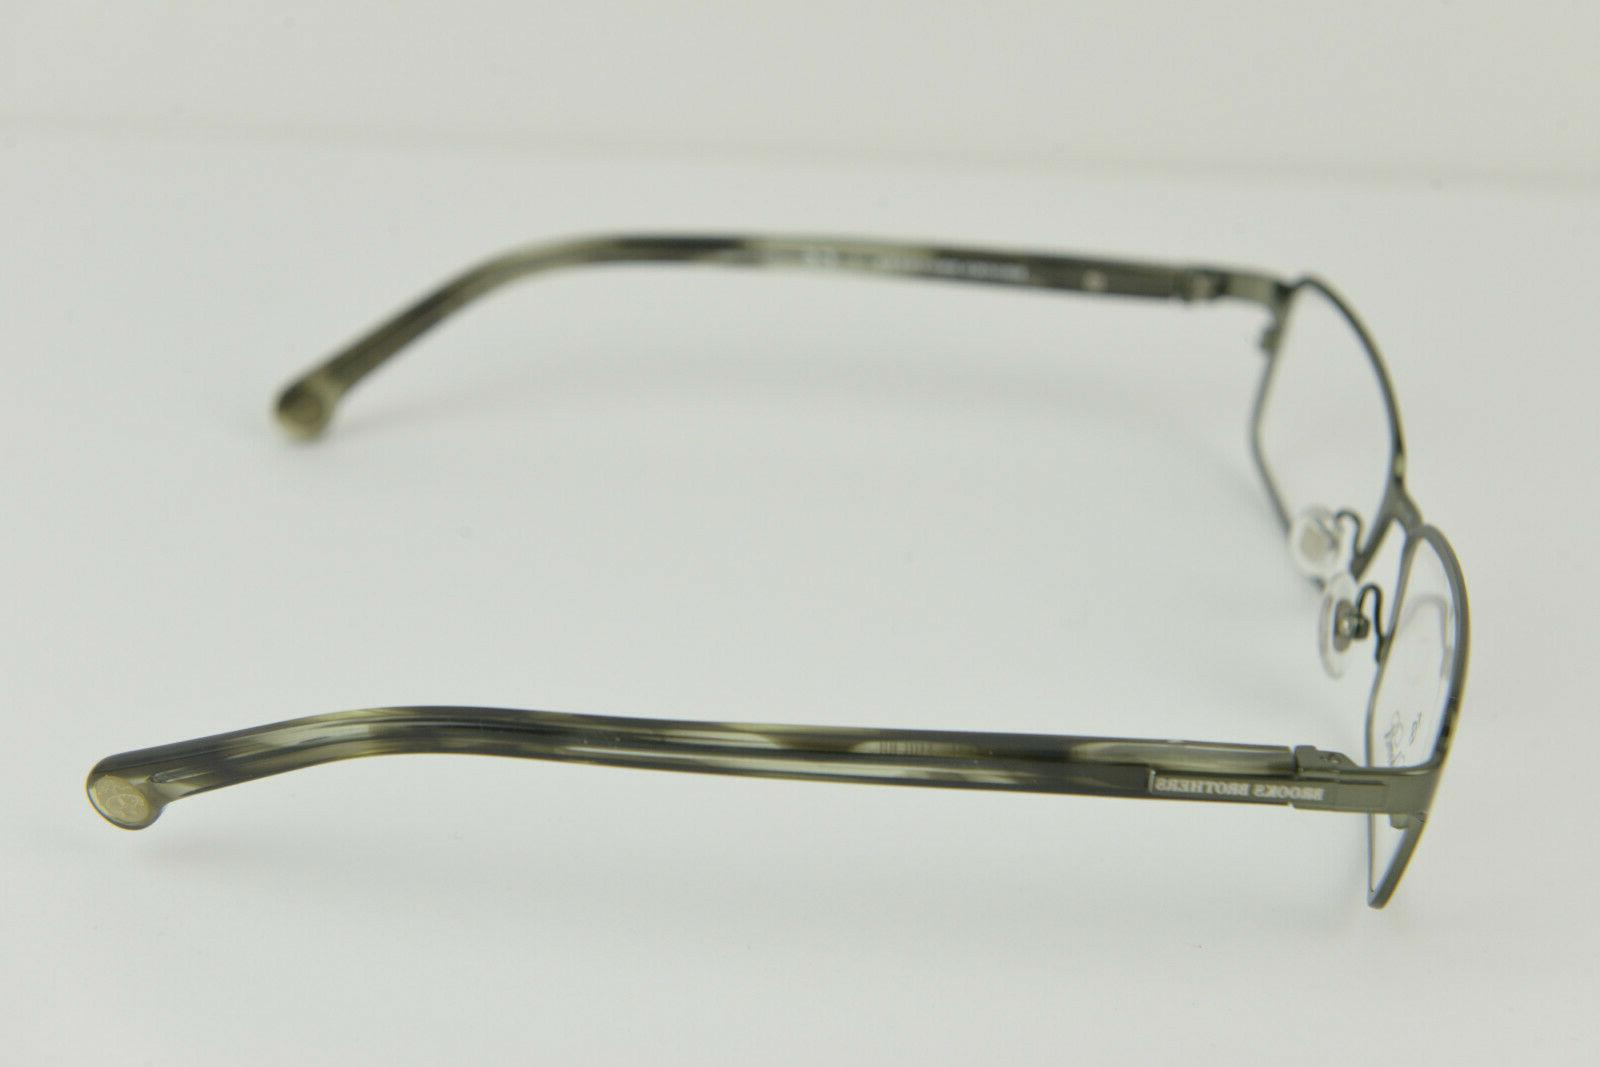 Brooks Brothers men's eyeglasses frame 1017 53-17 140 eye glasses frame